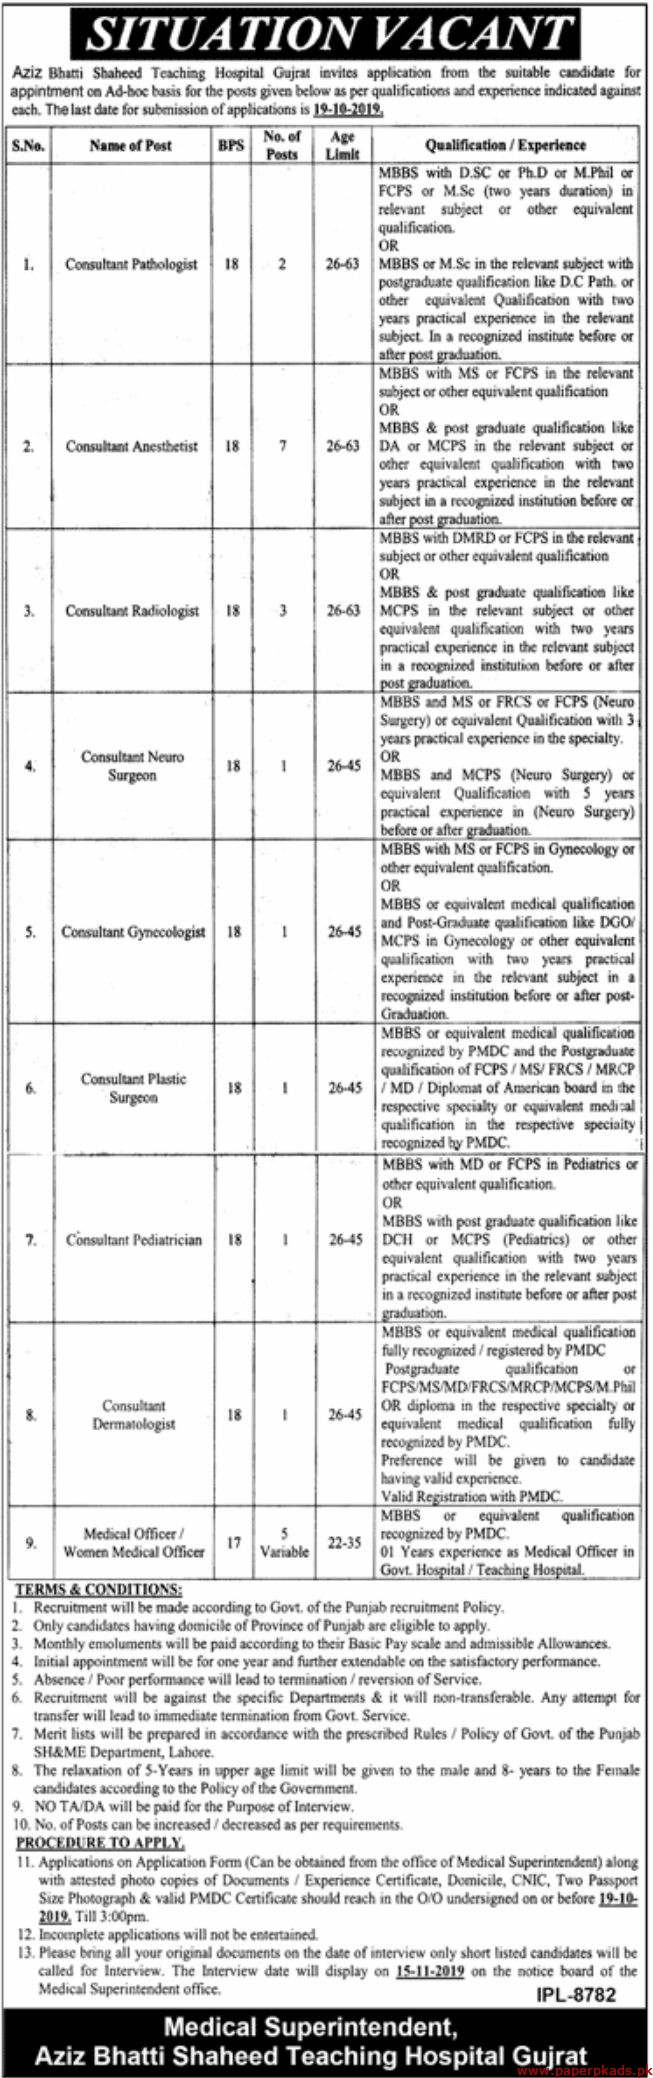 Aziz Bhatti Shaheed Teaching Hospital Jobs 2019 Latest